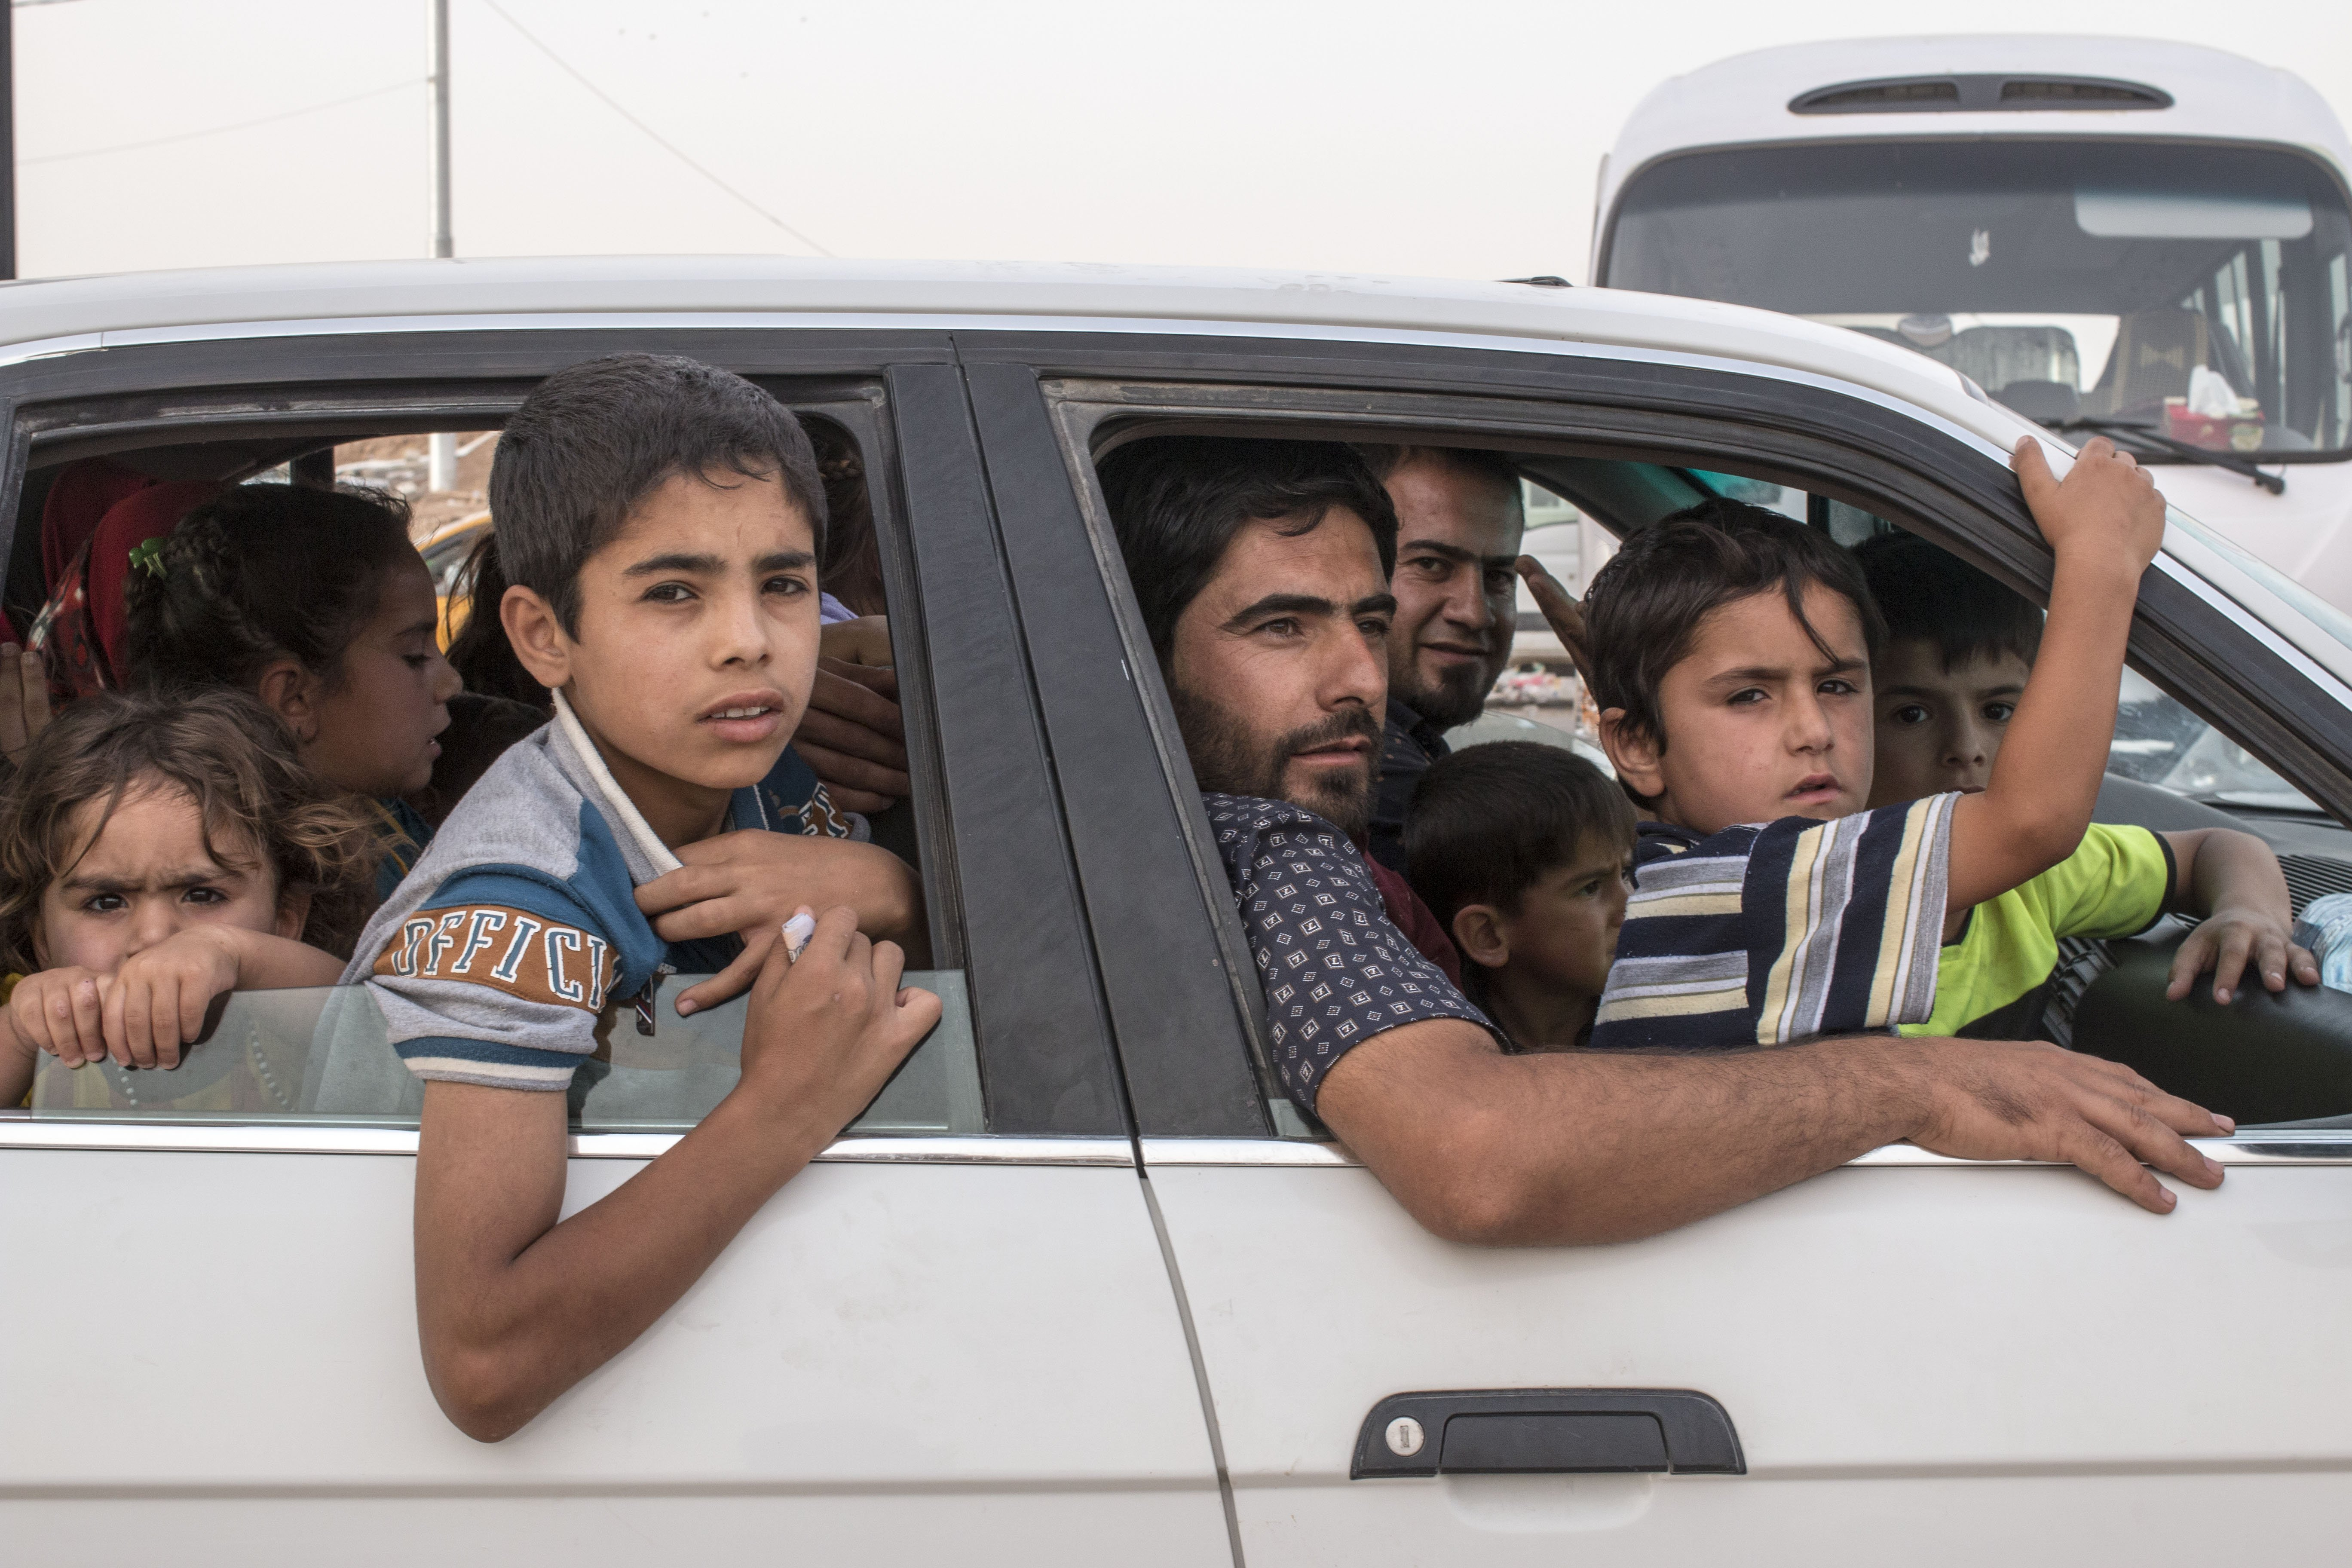 Children and families at a newly made refugee camp near Khazar check point in Mosul, Iraq on June 11, 2014.